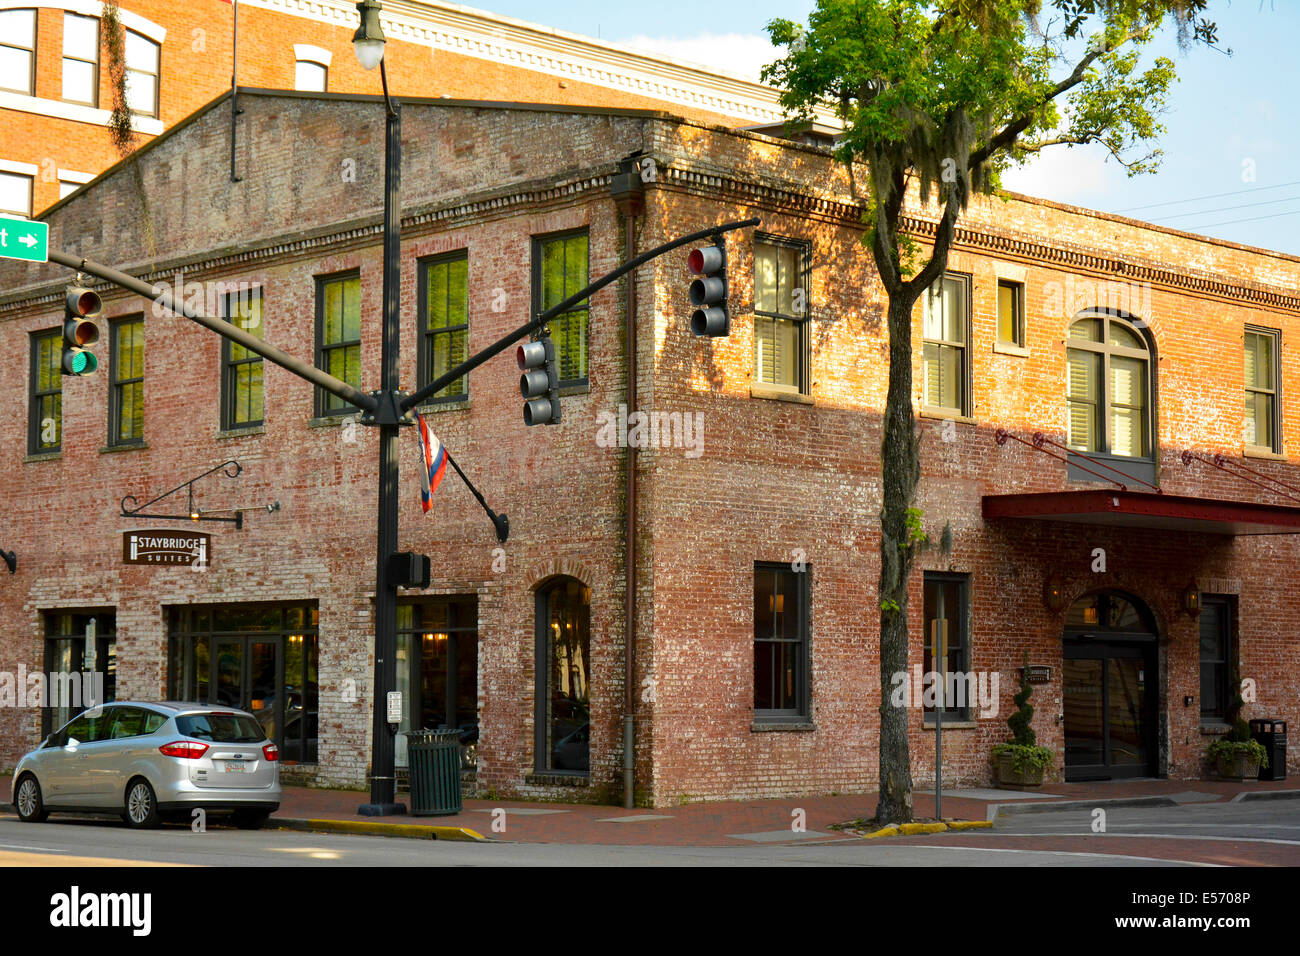 The Staybridge Suites thrive in a landmark building in the historic district of Savannah, GA, USA - Stock Image